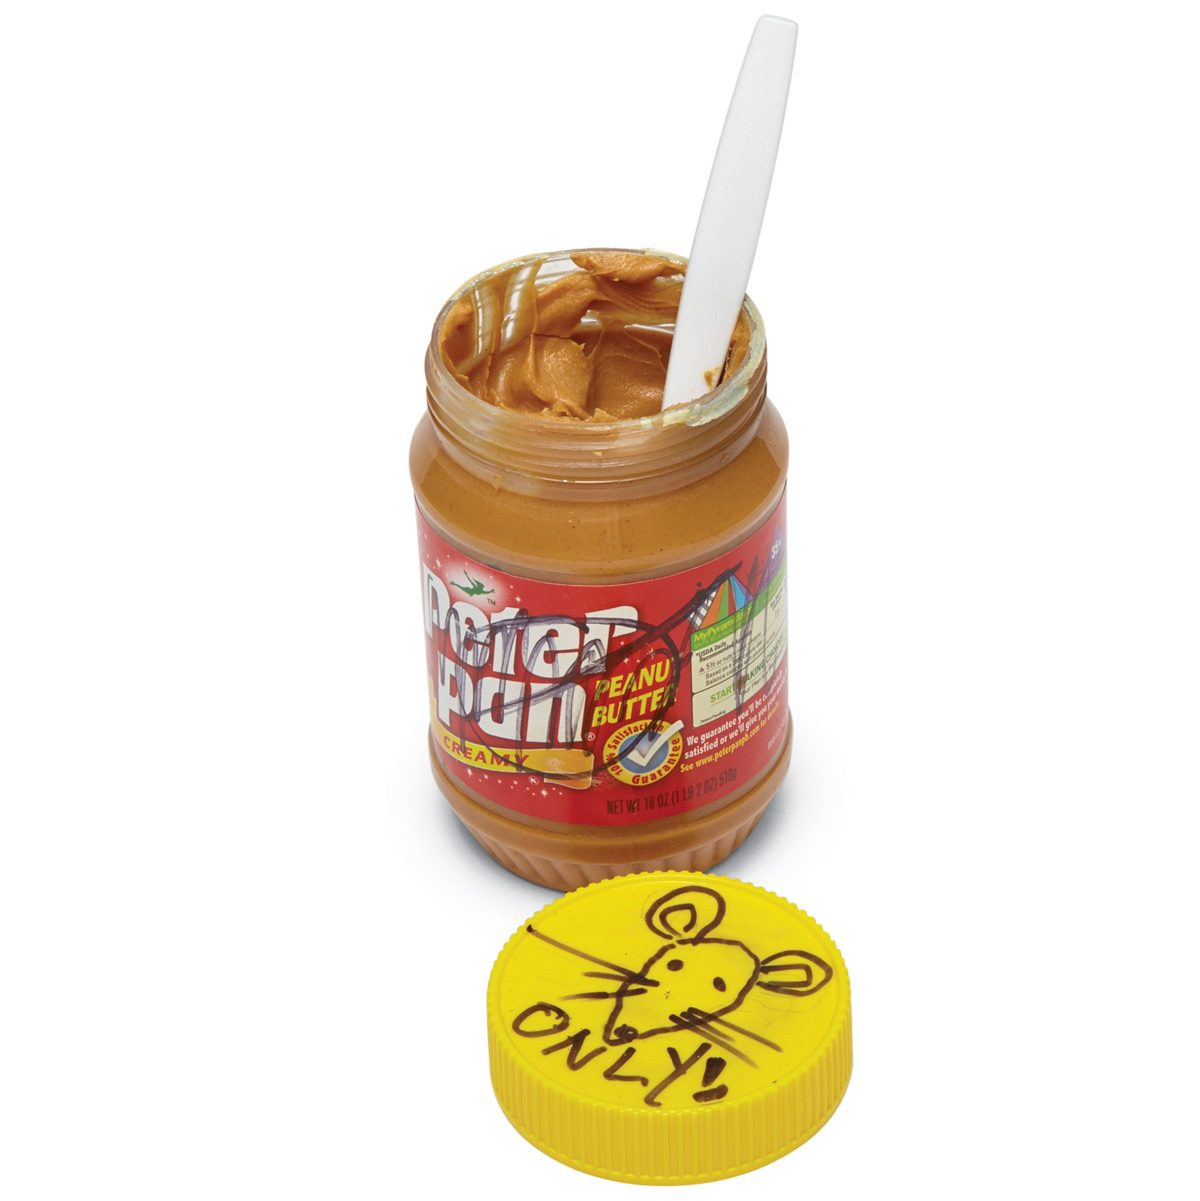 Peanut Butter is the Best Mouse Trap Bait